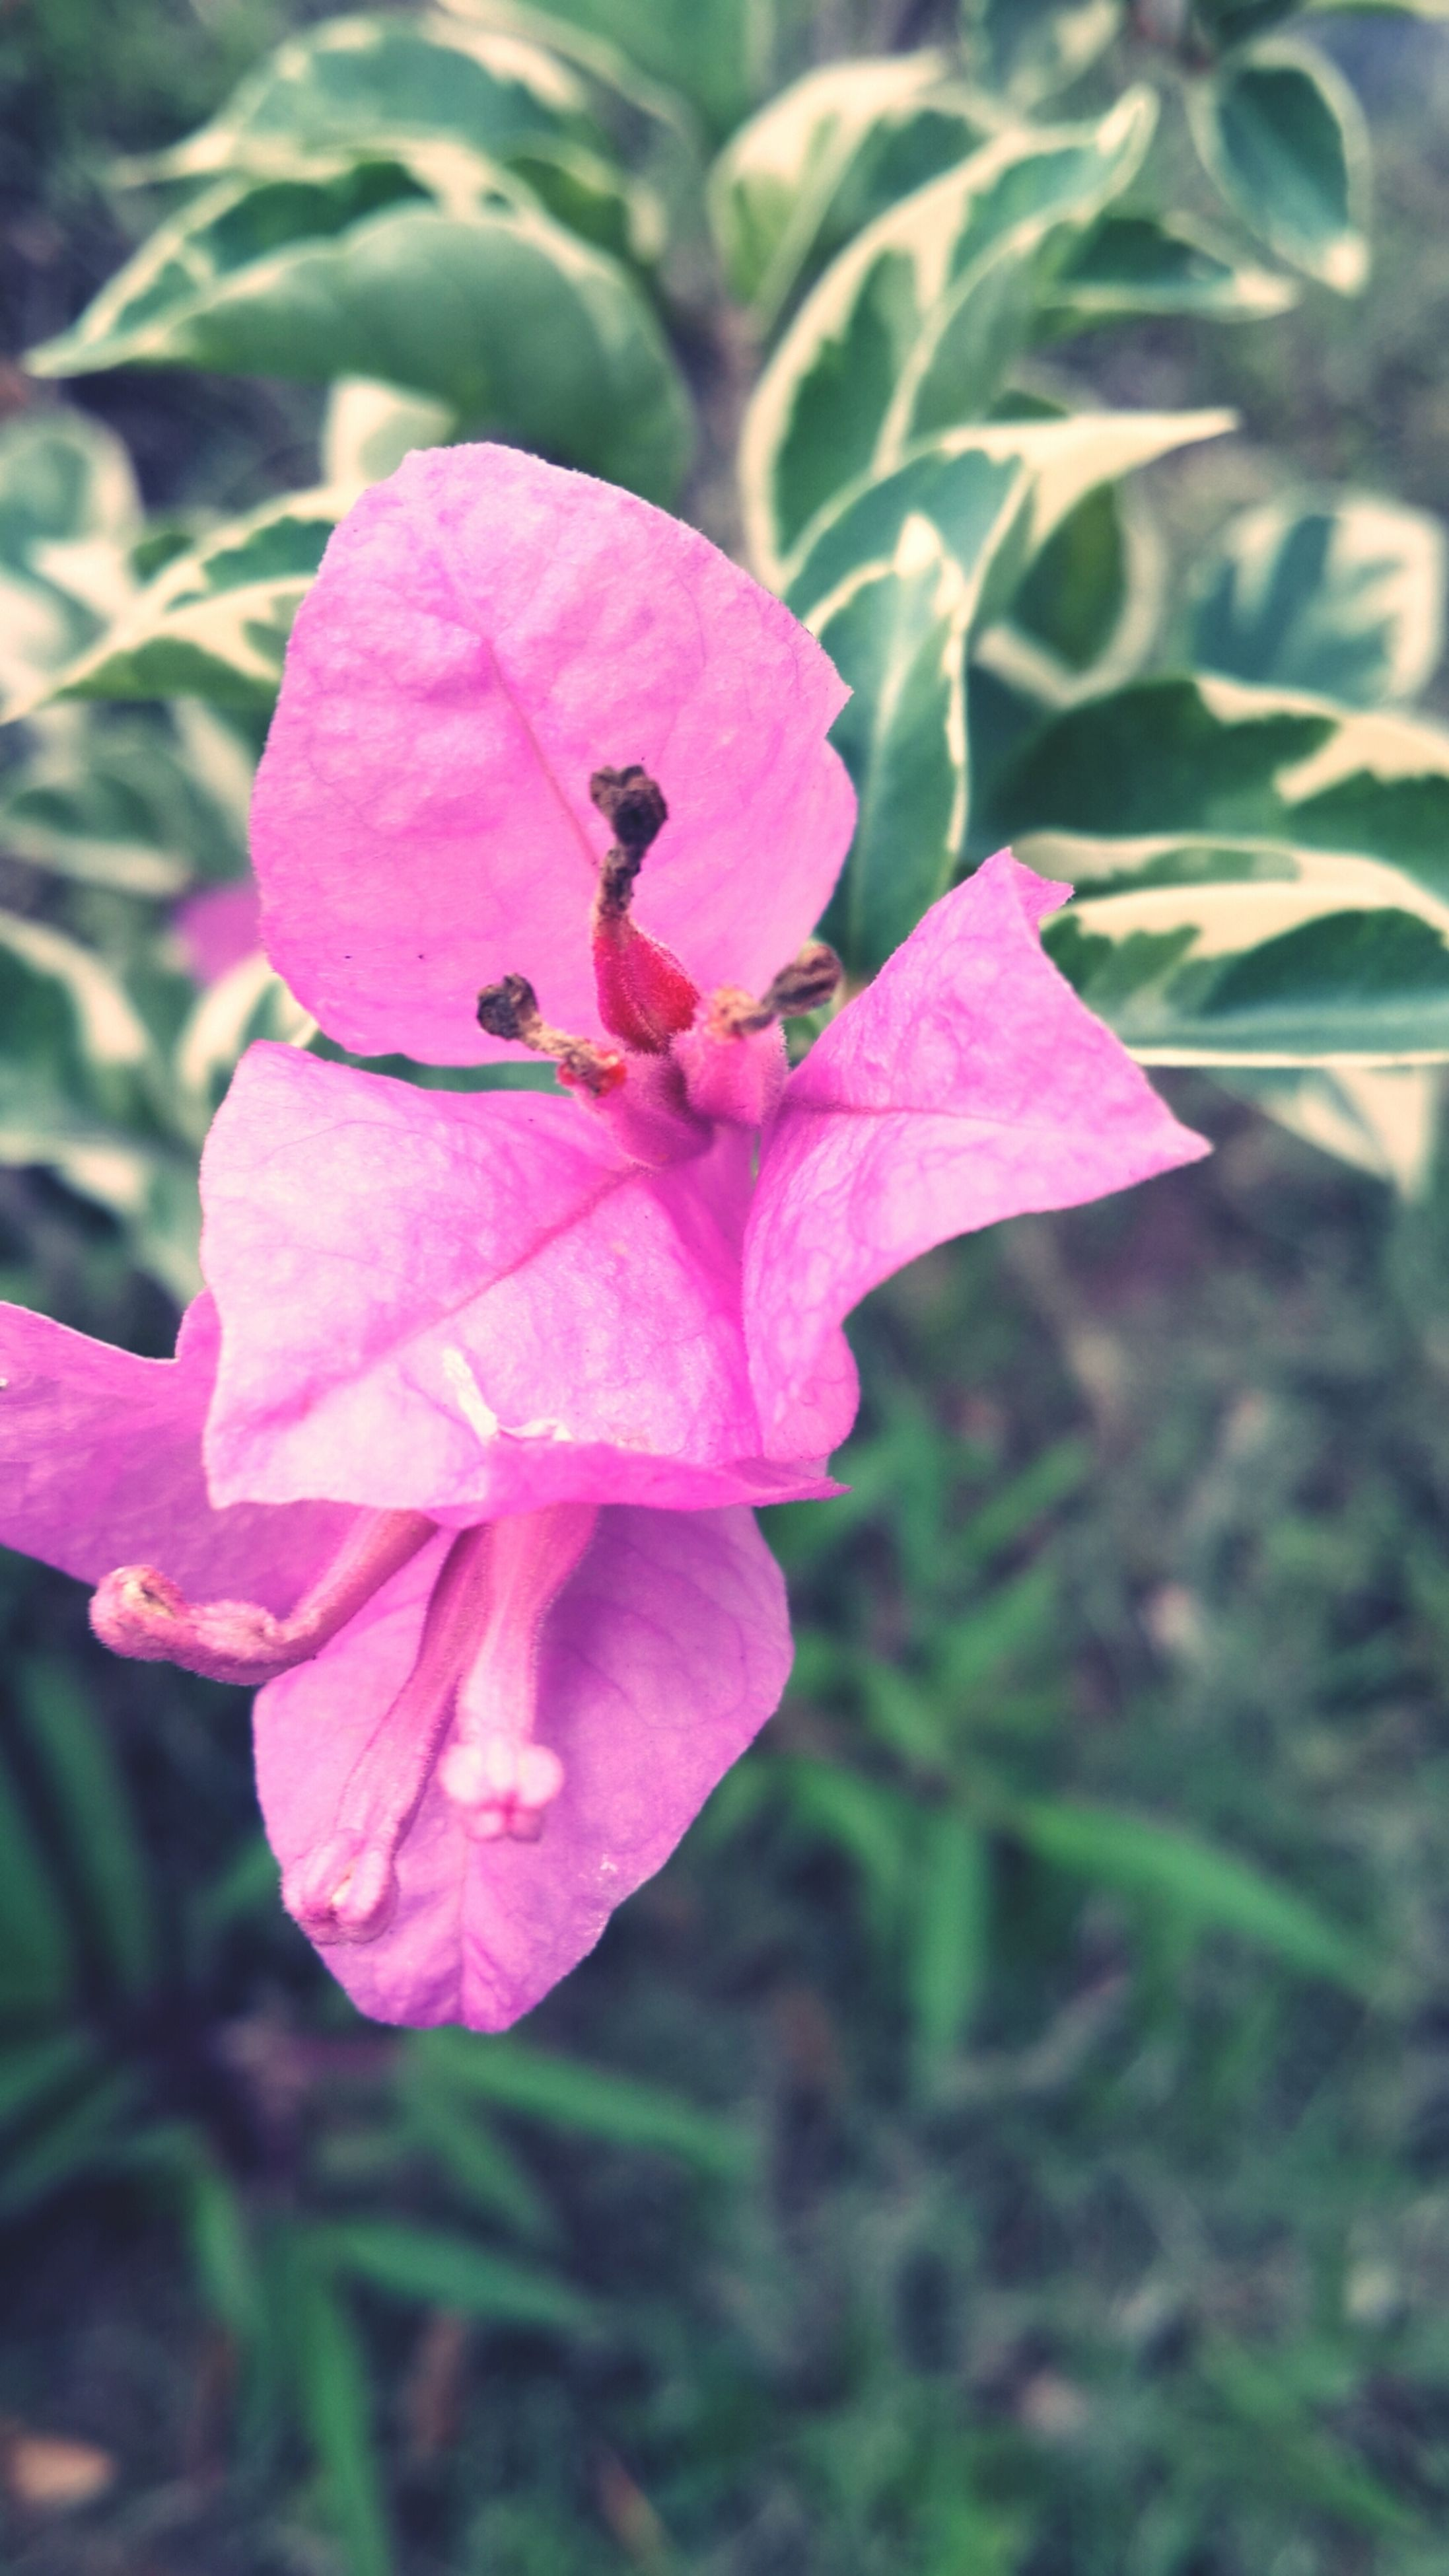 flower, freshness, petal, fragility, flower head, growth, beauty in nature, pink color, close-up, nature, focus on foreground, stamen, blooming, plant, in bloom, leaf, pollen, day, outdoors, no people